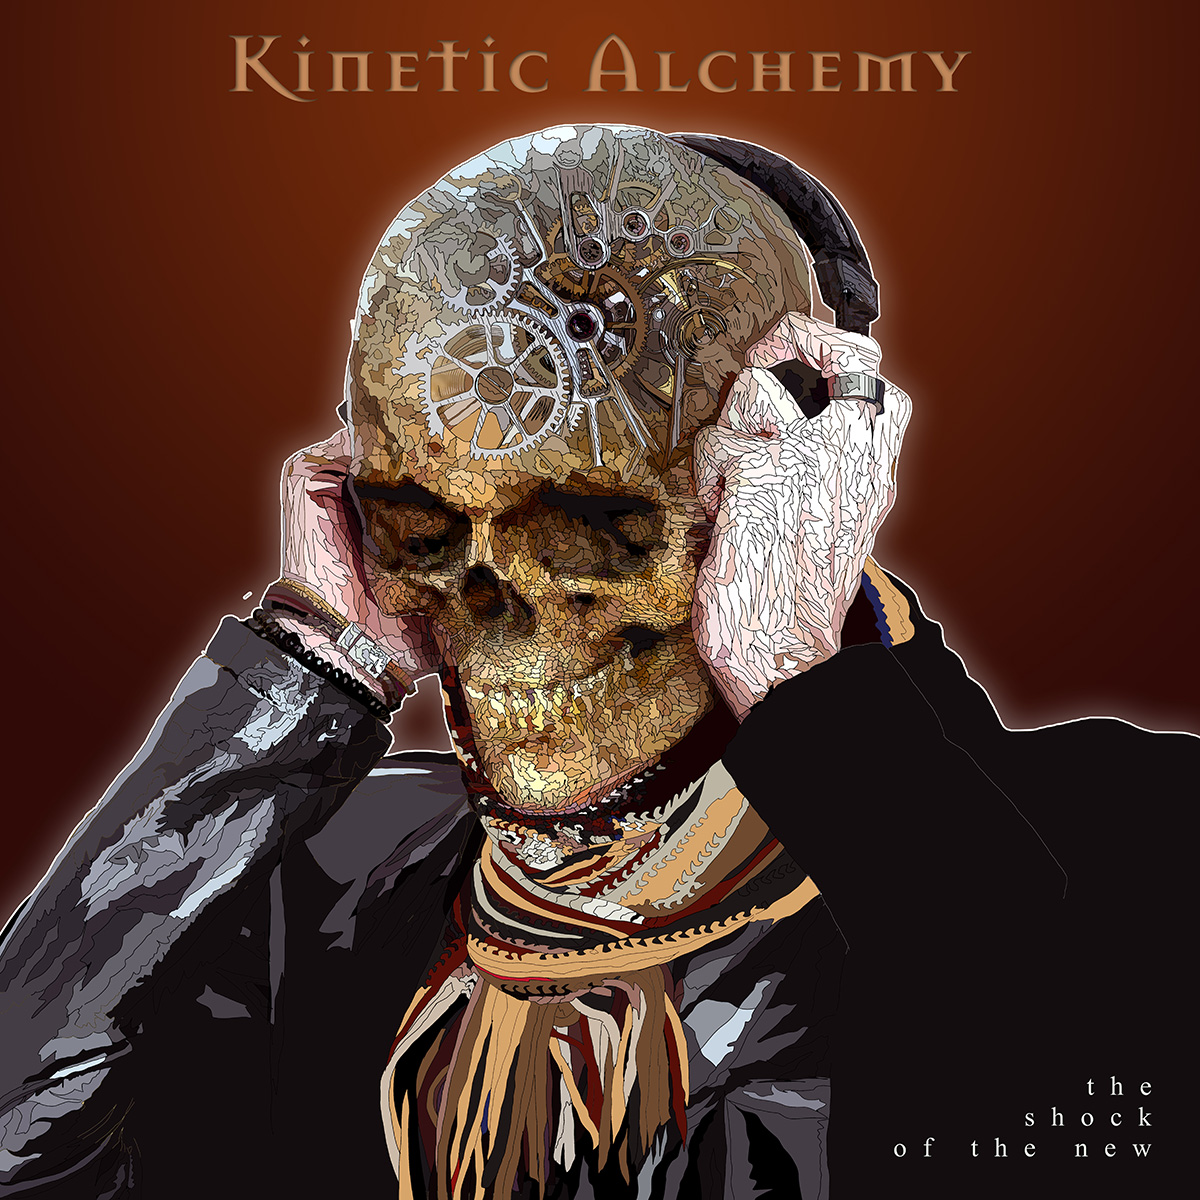 Kinetic Alchemy / The Shock of the New - music album by Paul Kingsley Squire